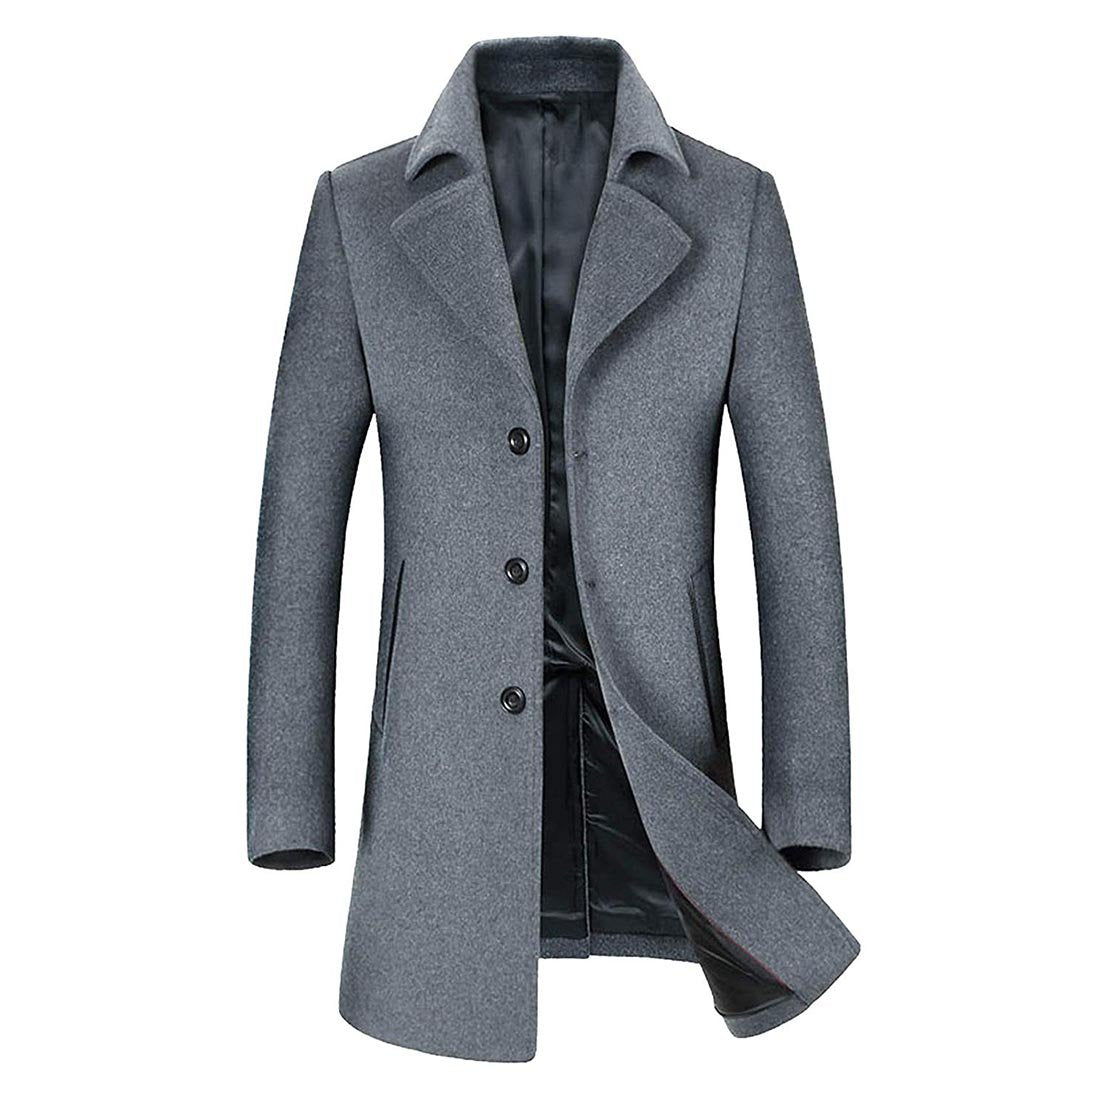 ff808198a Men's Wool Coats Single/Double Breasted Trench Coat Winter Jacket